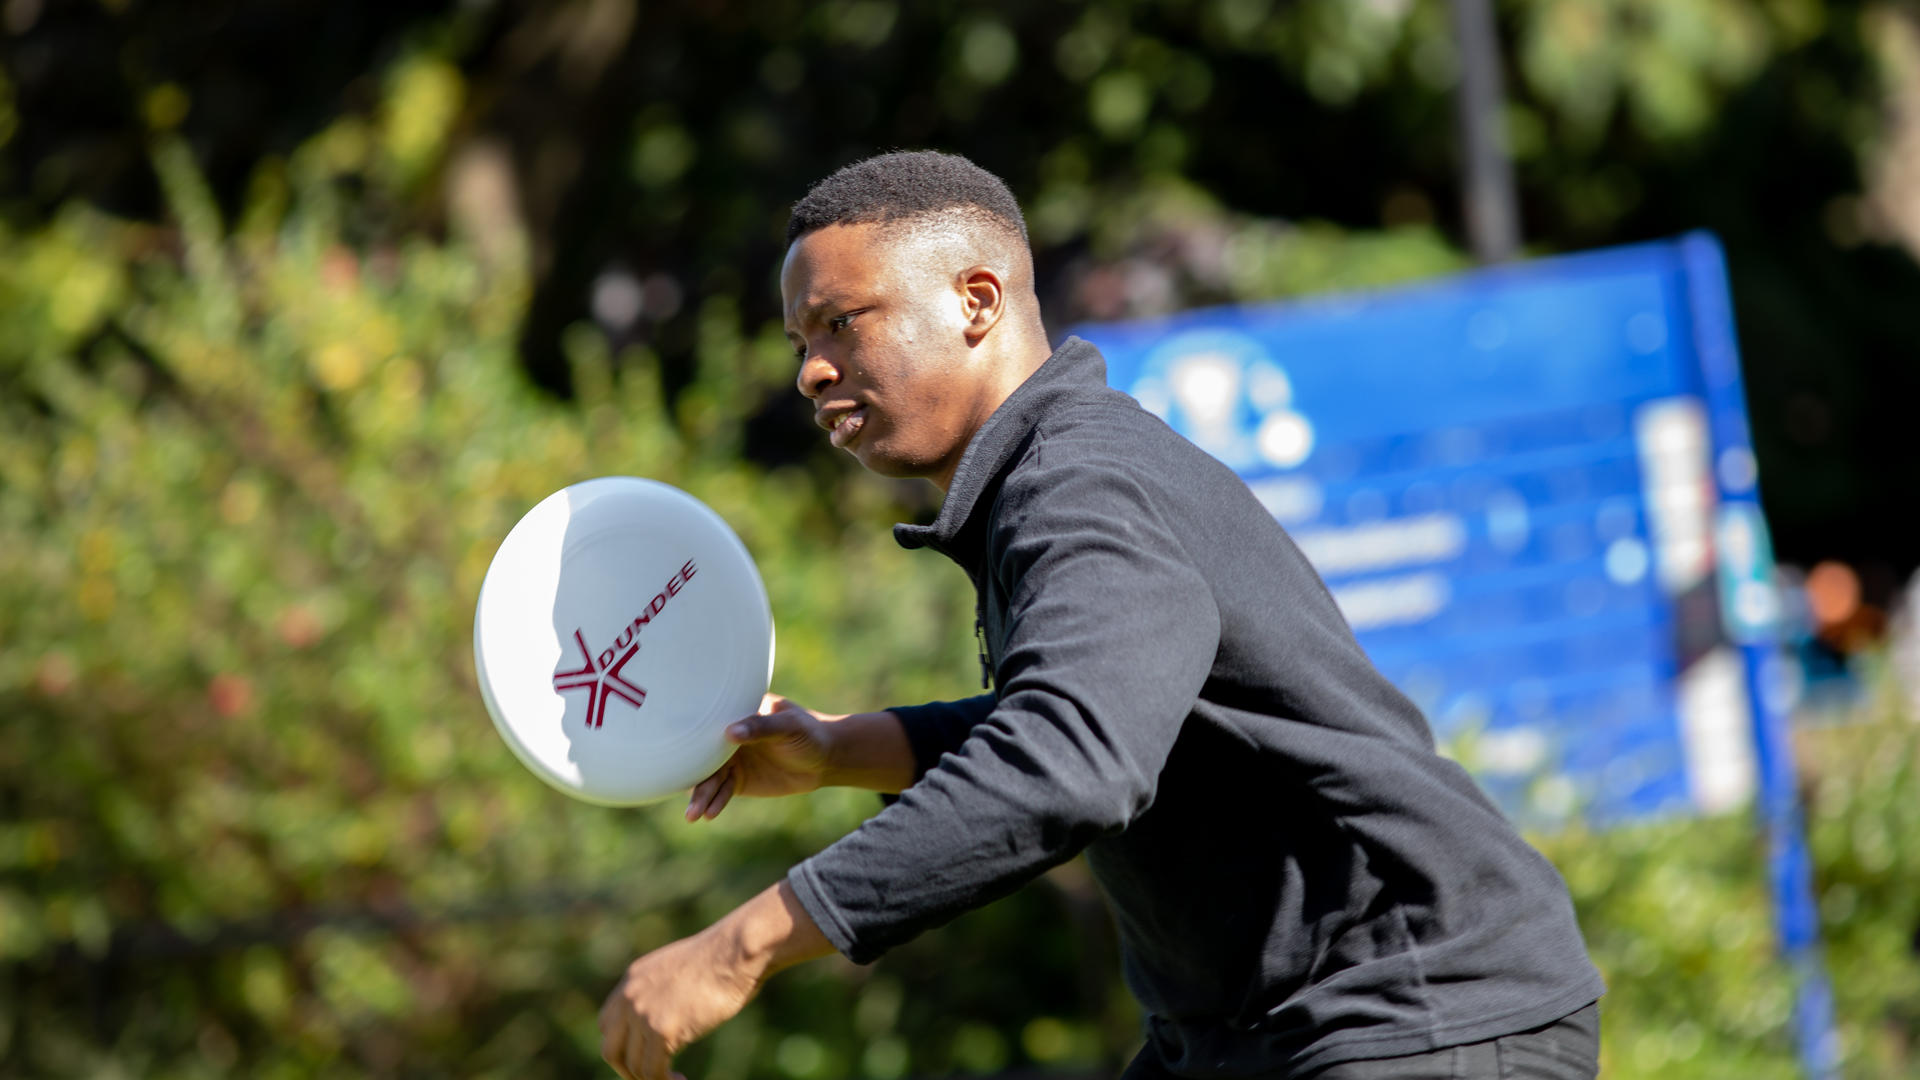 Student playing frisbee